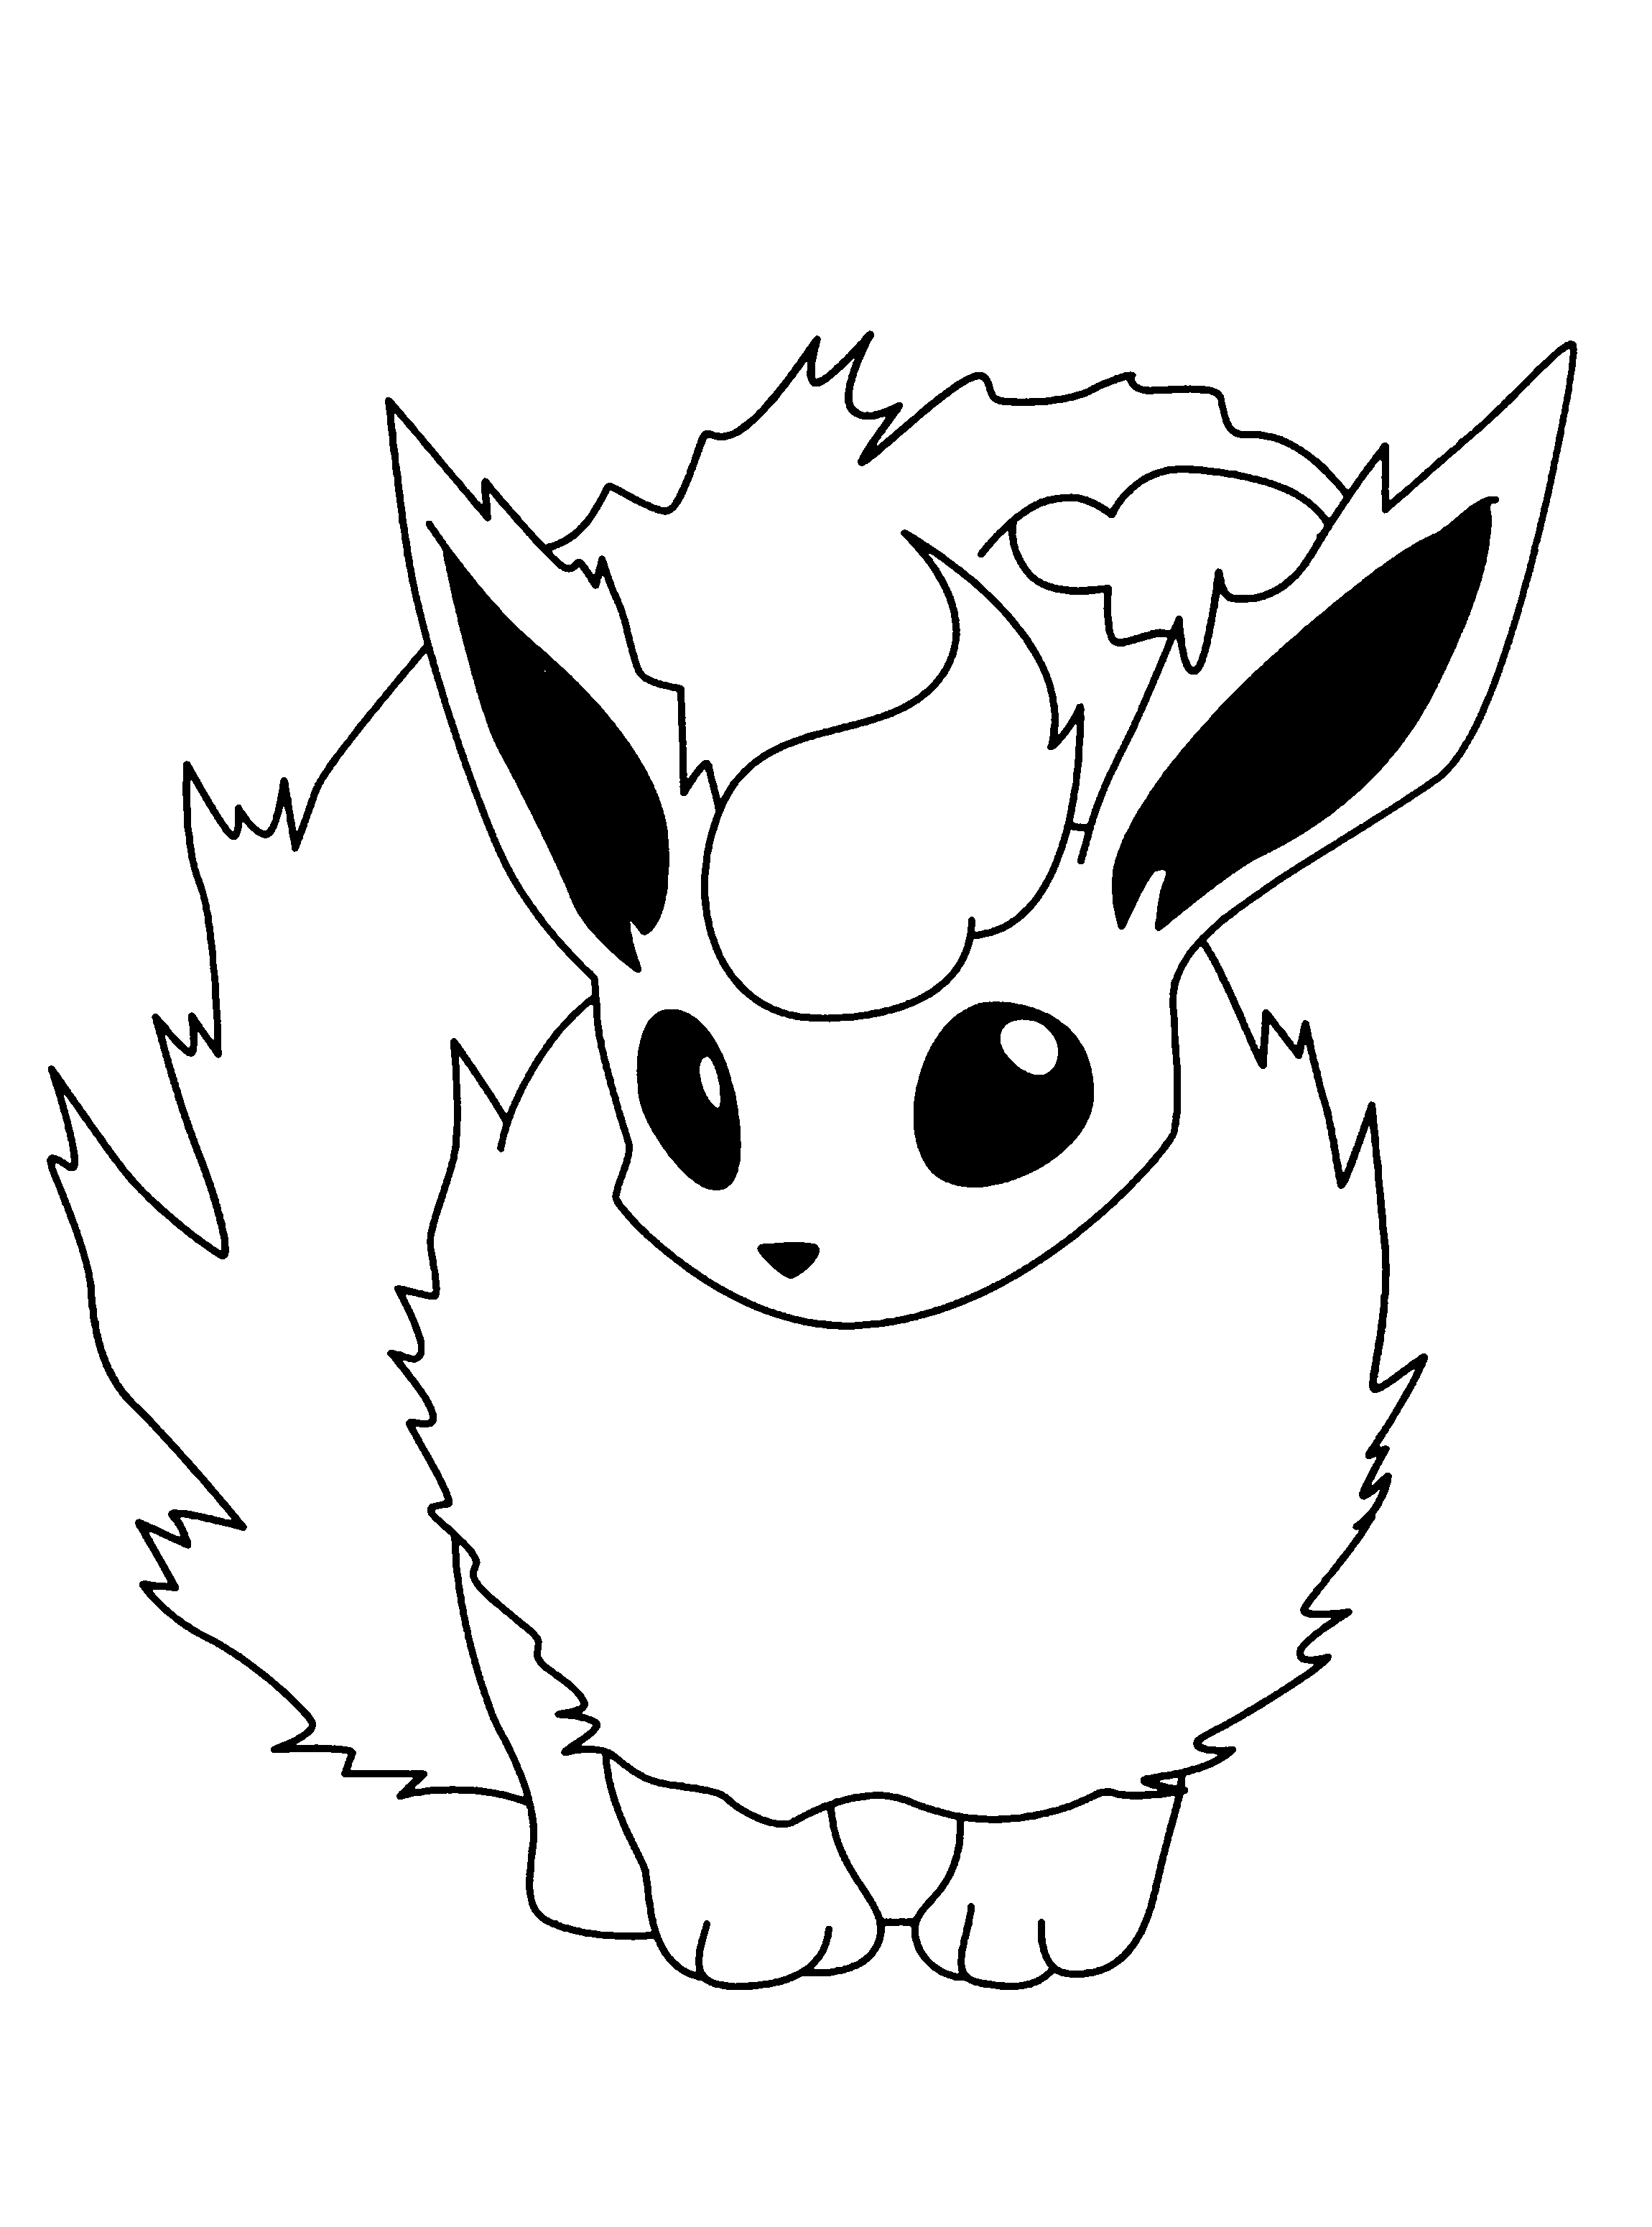 Coloring pages for pokemon - Pokemon Coloring Pages